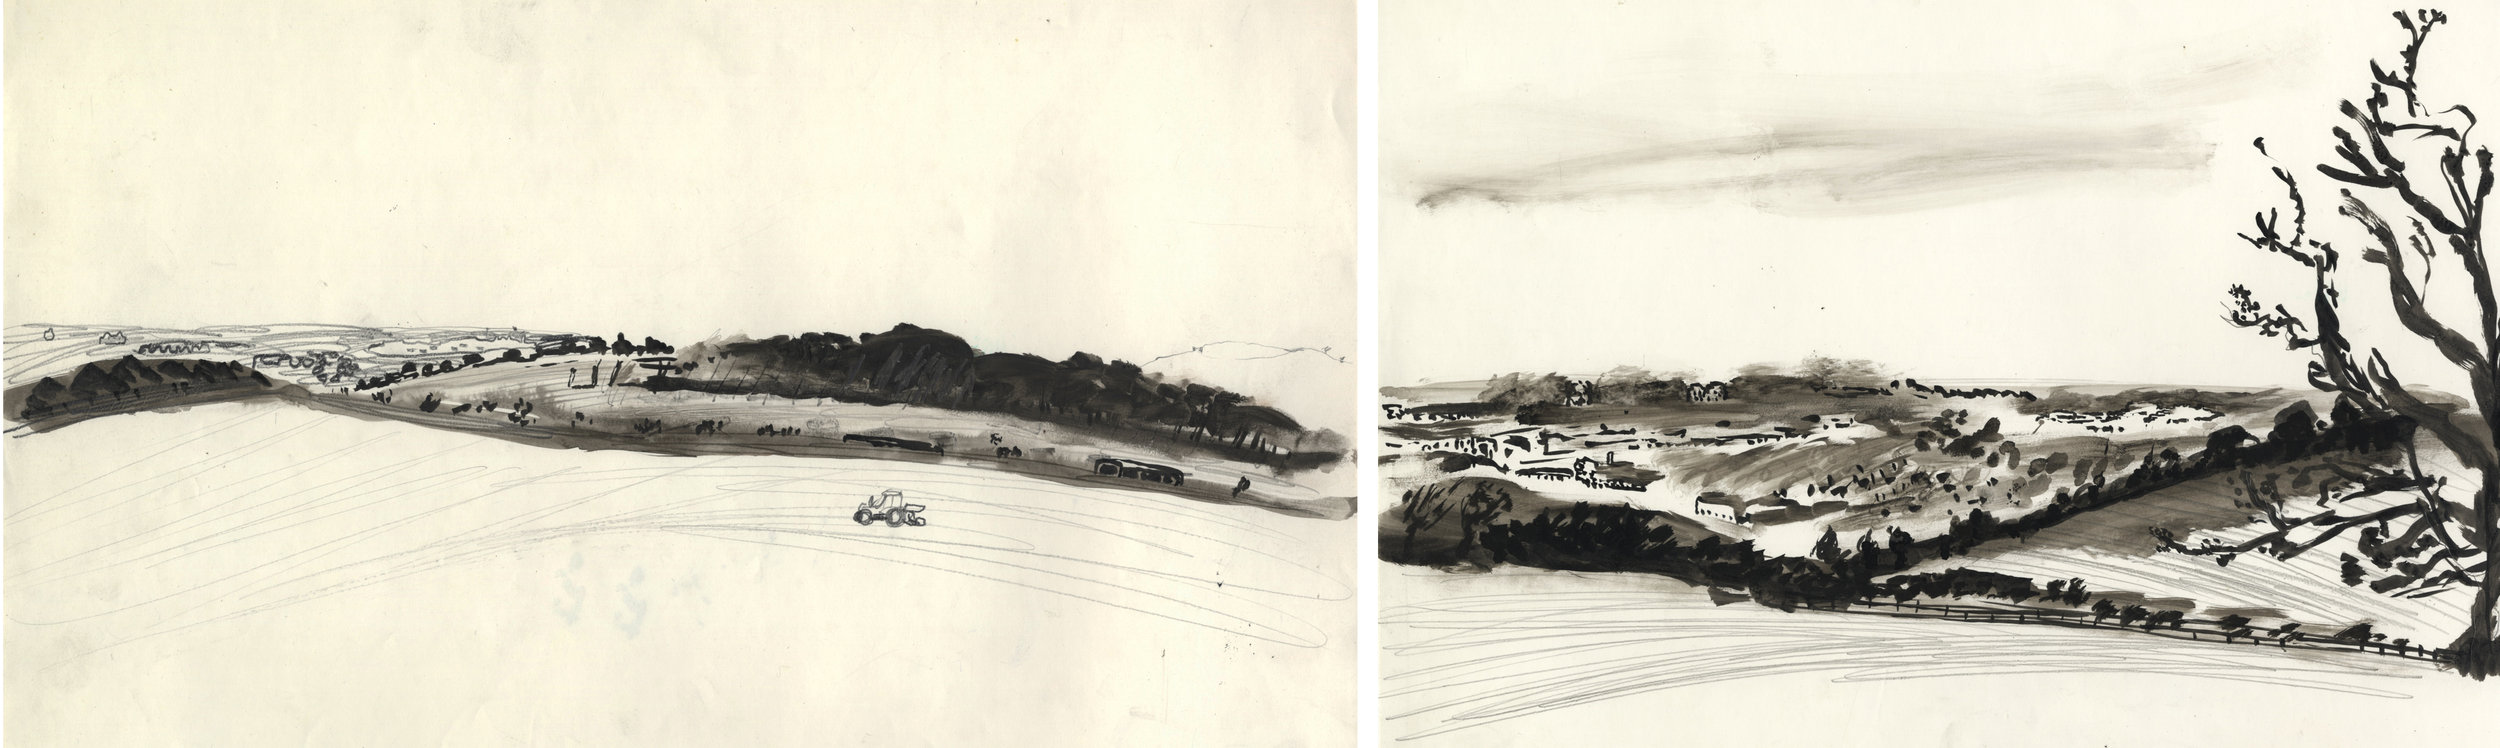 'Honda Factory and Charlbury Hill', drawings numbered 7 & 8 from my 1993 series.